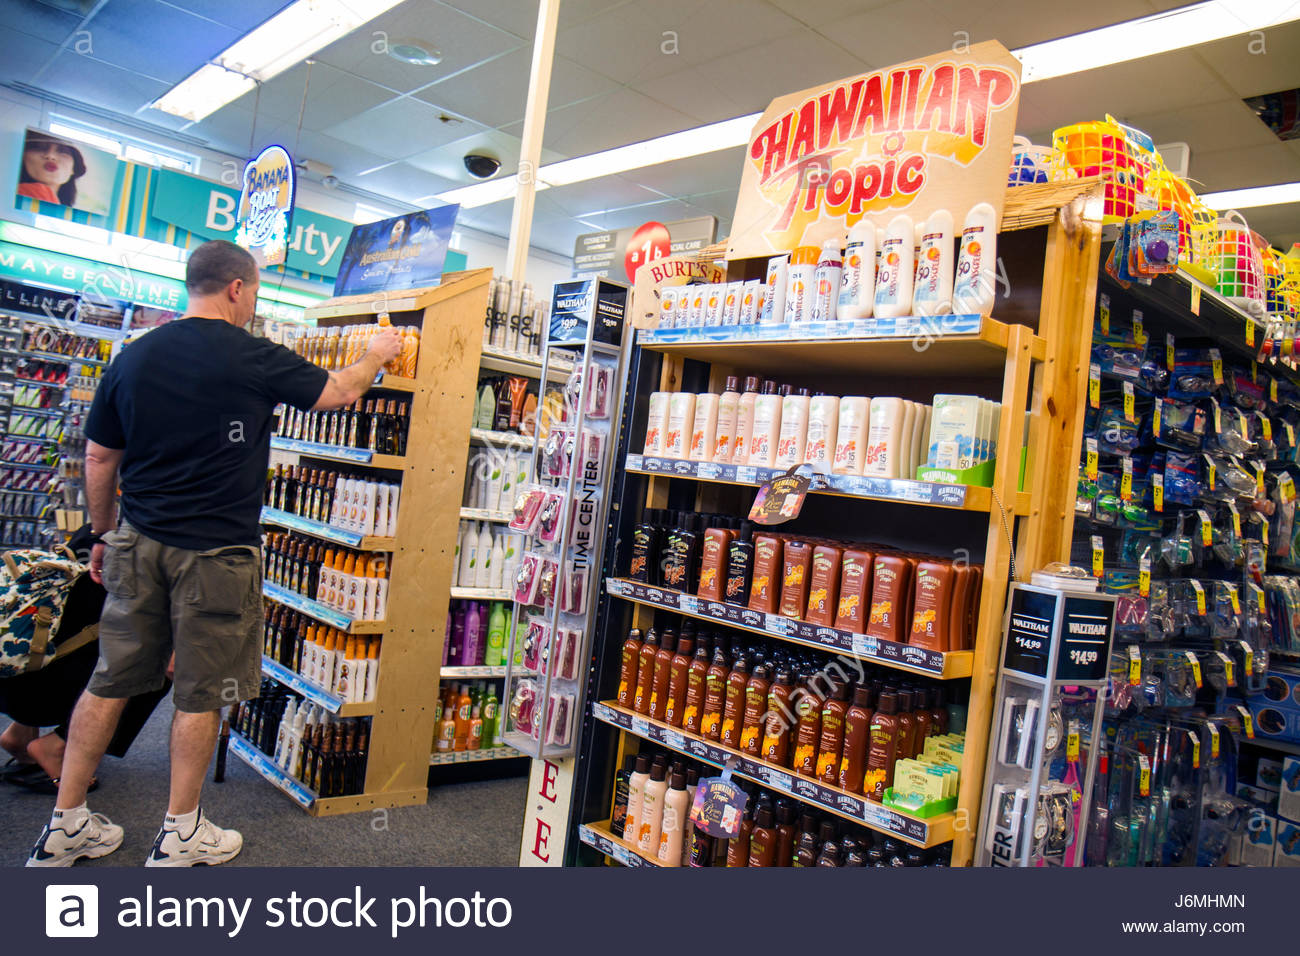 tropic of cancer stock photos u0026 tropic of cancer stock images alamy